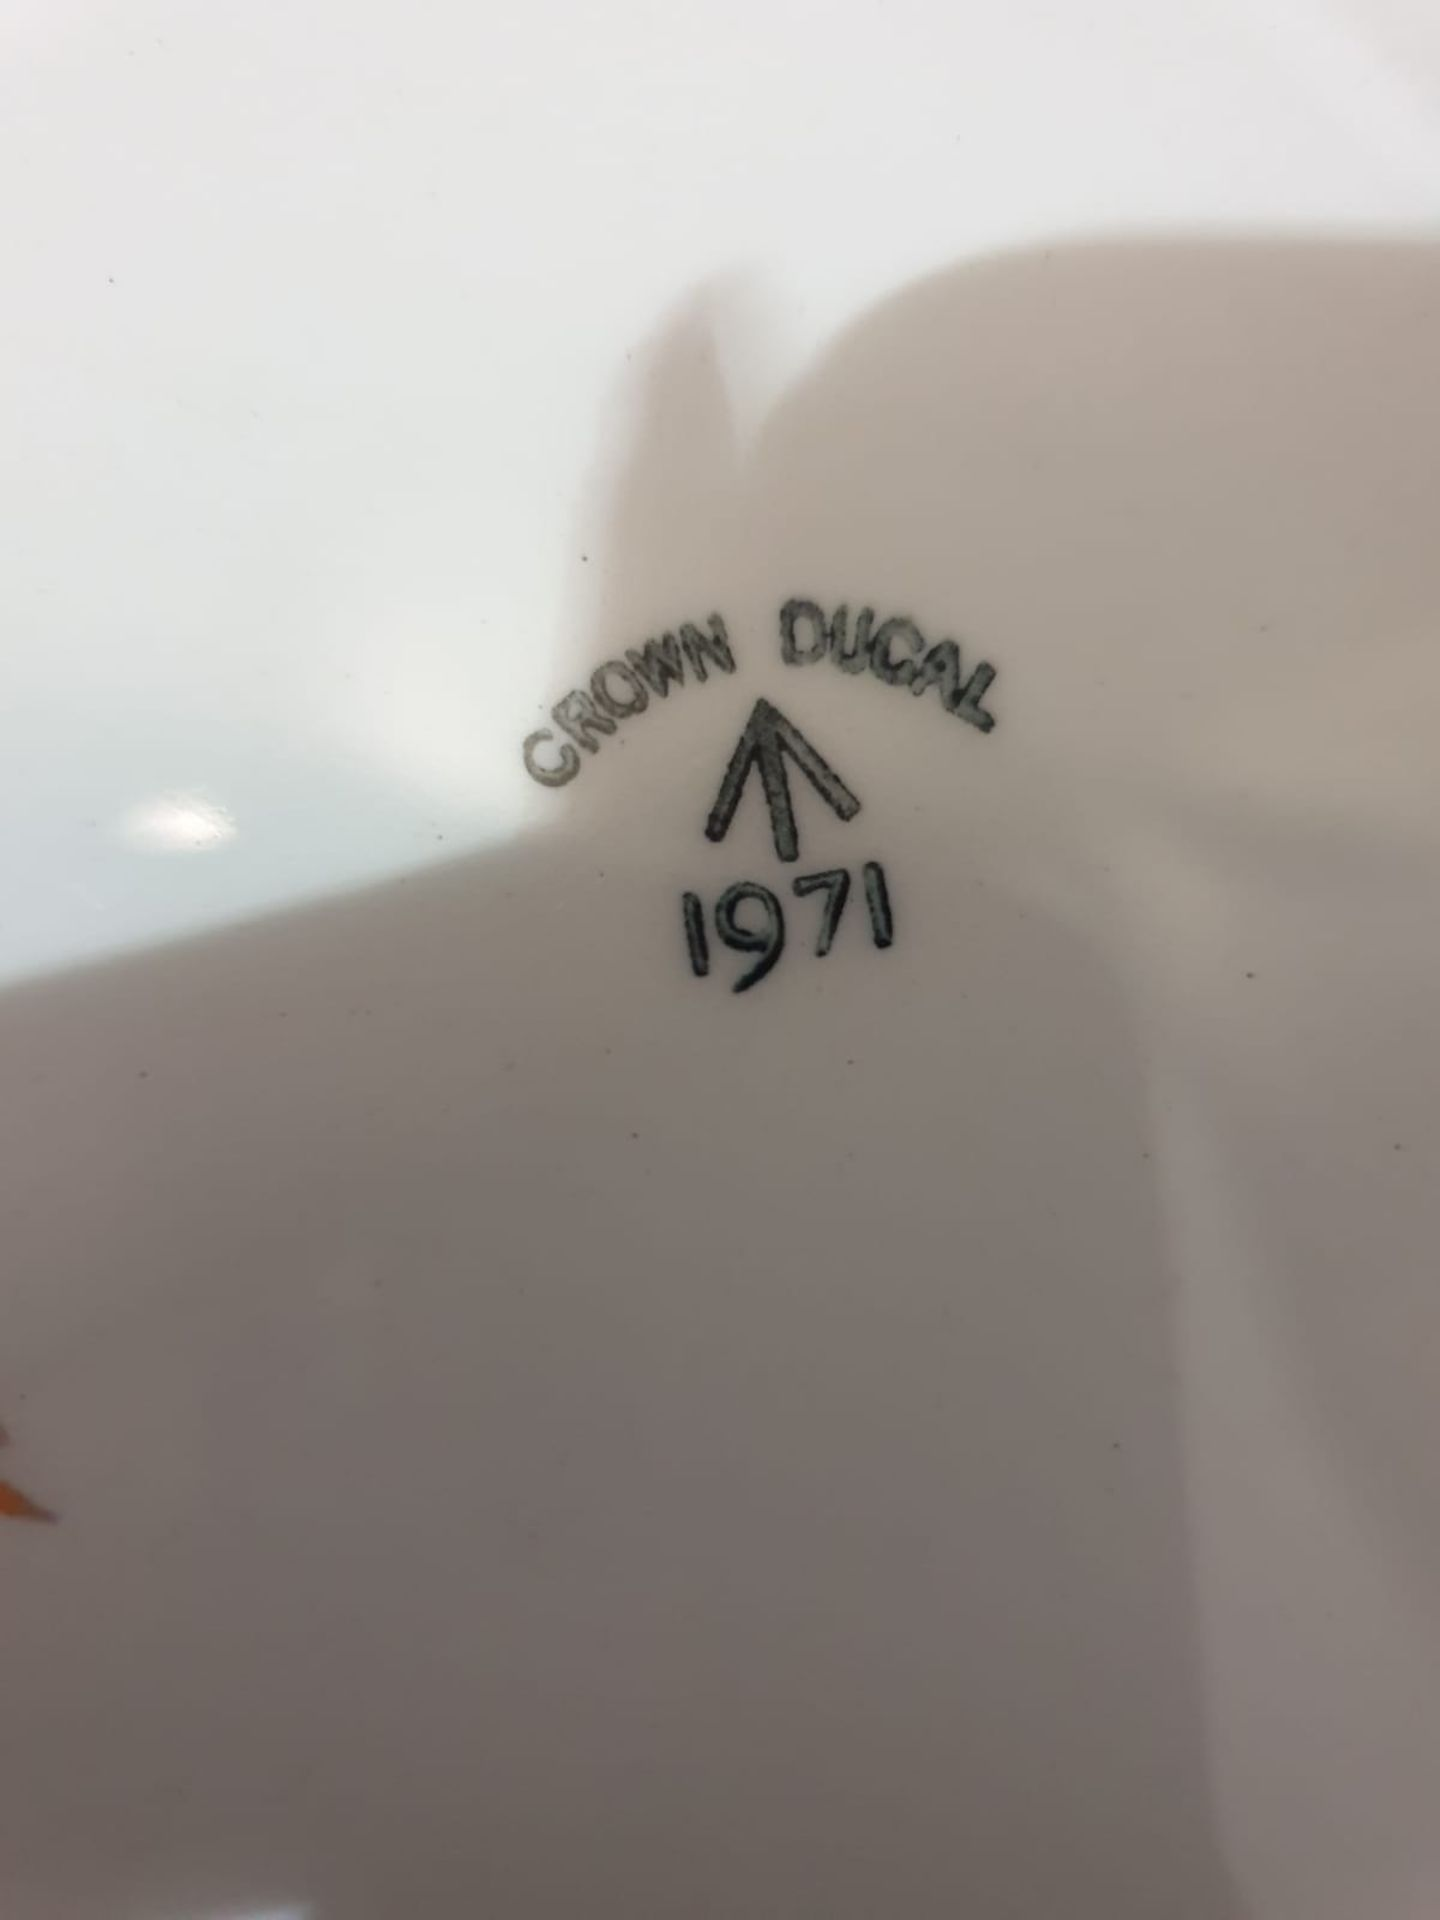 13 x Crown Ducal England Dinner plates White Gold rim 1971 - Image 3 of 3